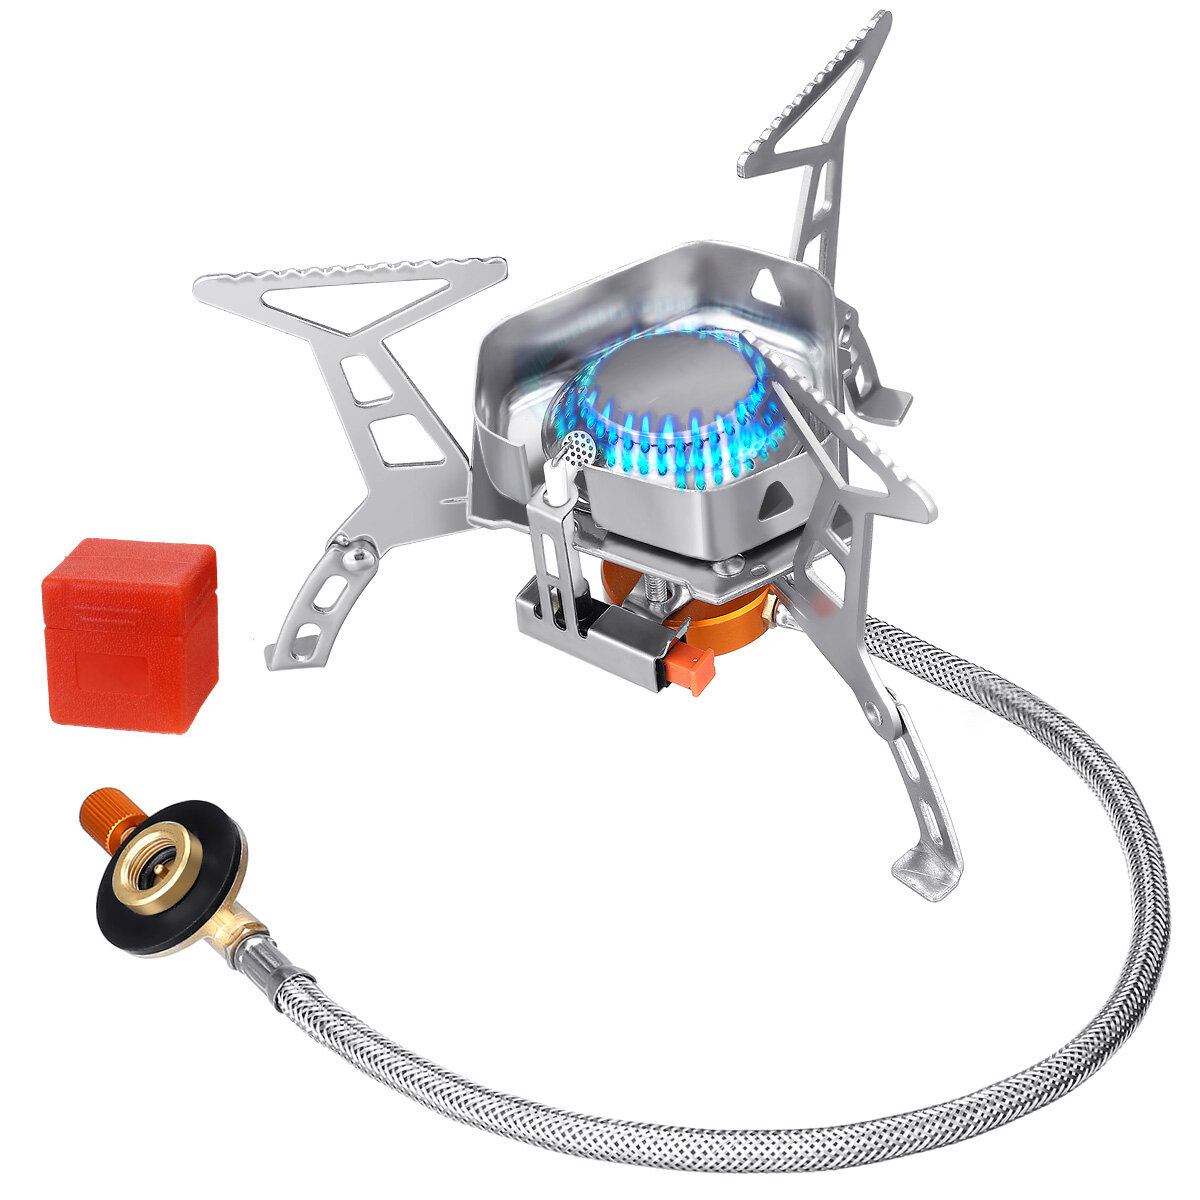 IPRee® 3500W Camping Stove Camping Cooker with Piezo Ignition Small Foldable Windproof Camping Gas Stove Compact Durable Gas Burner for Trekking Picnic Outdoor with Carrying Box